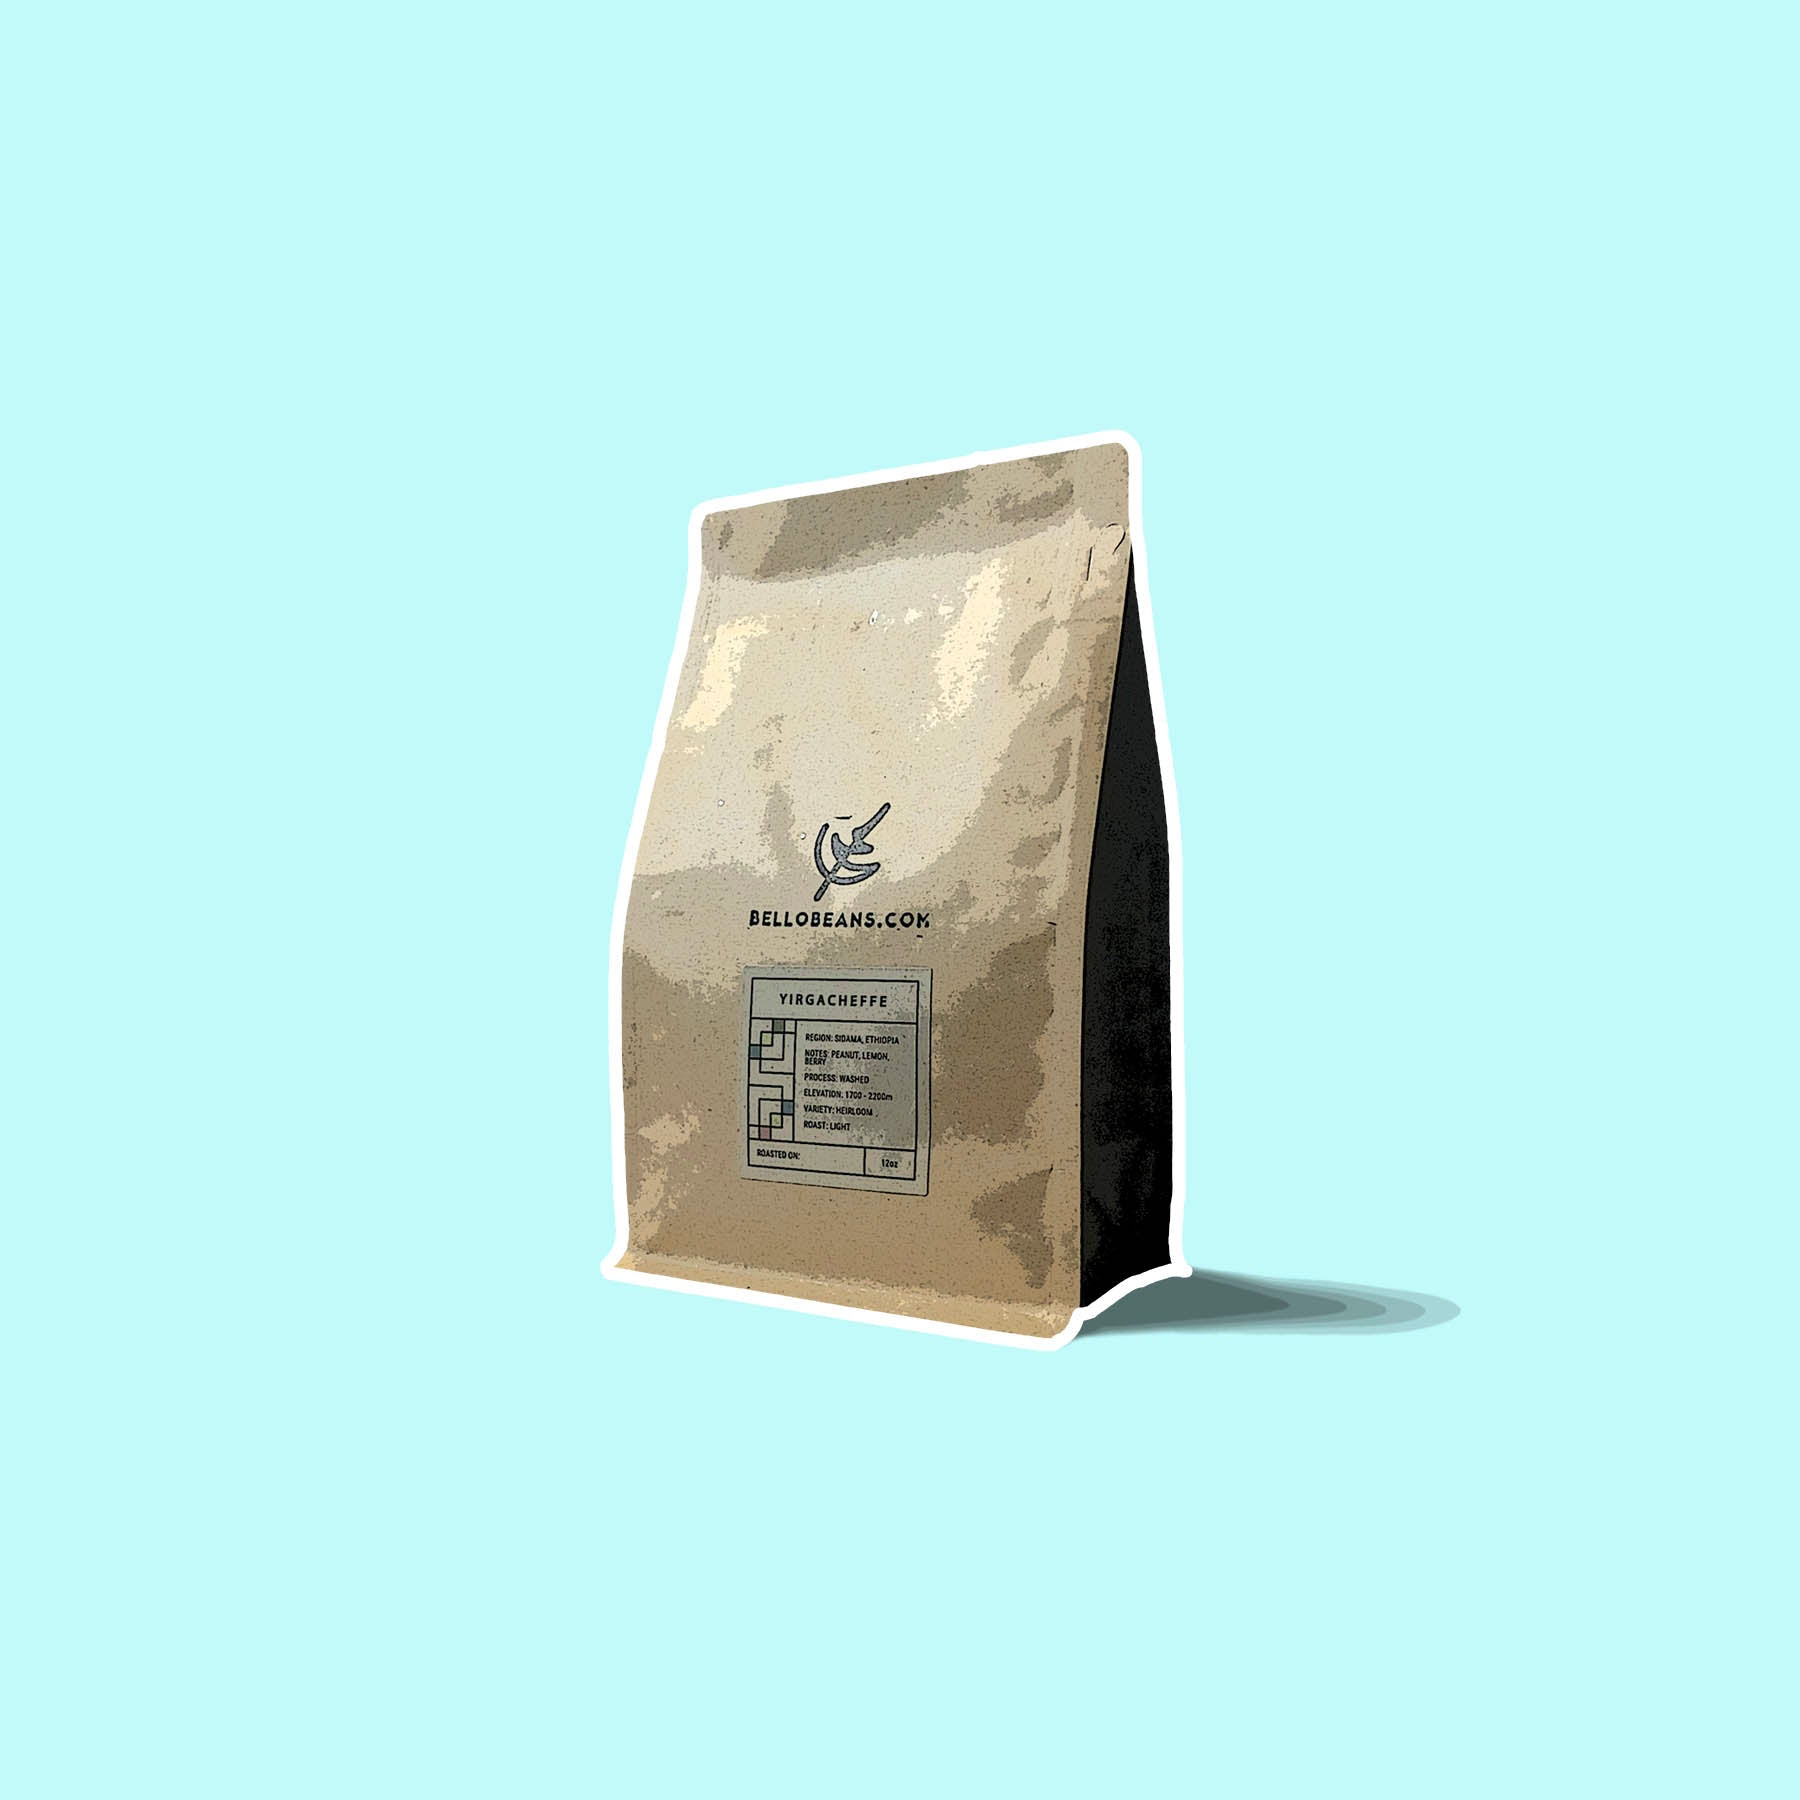 Yirgacheffe ethiopia coffee bean bag